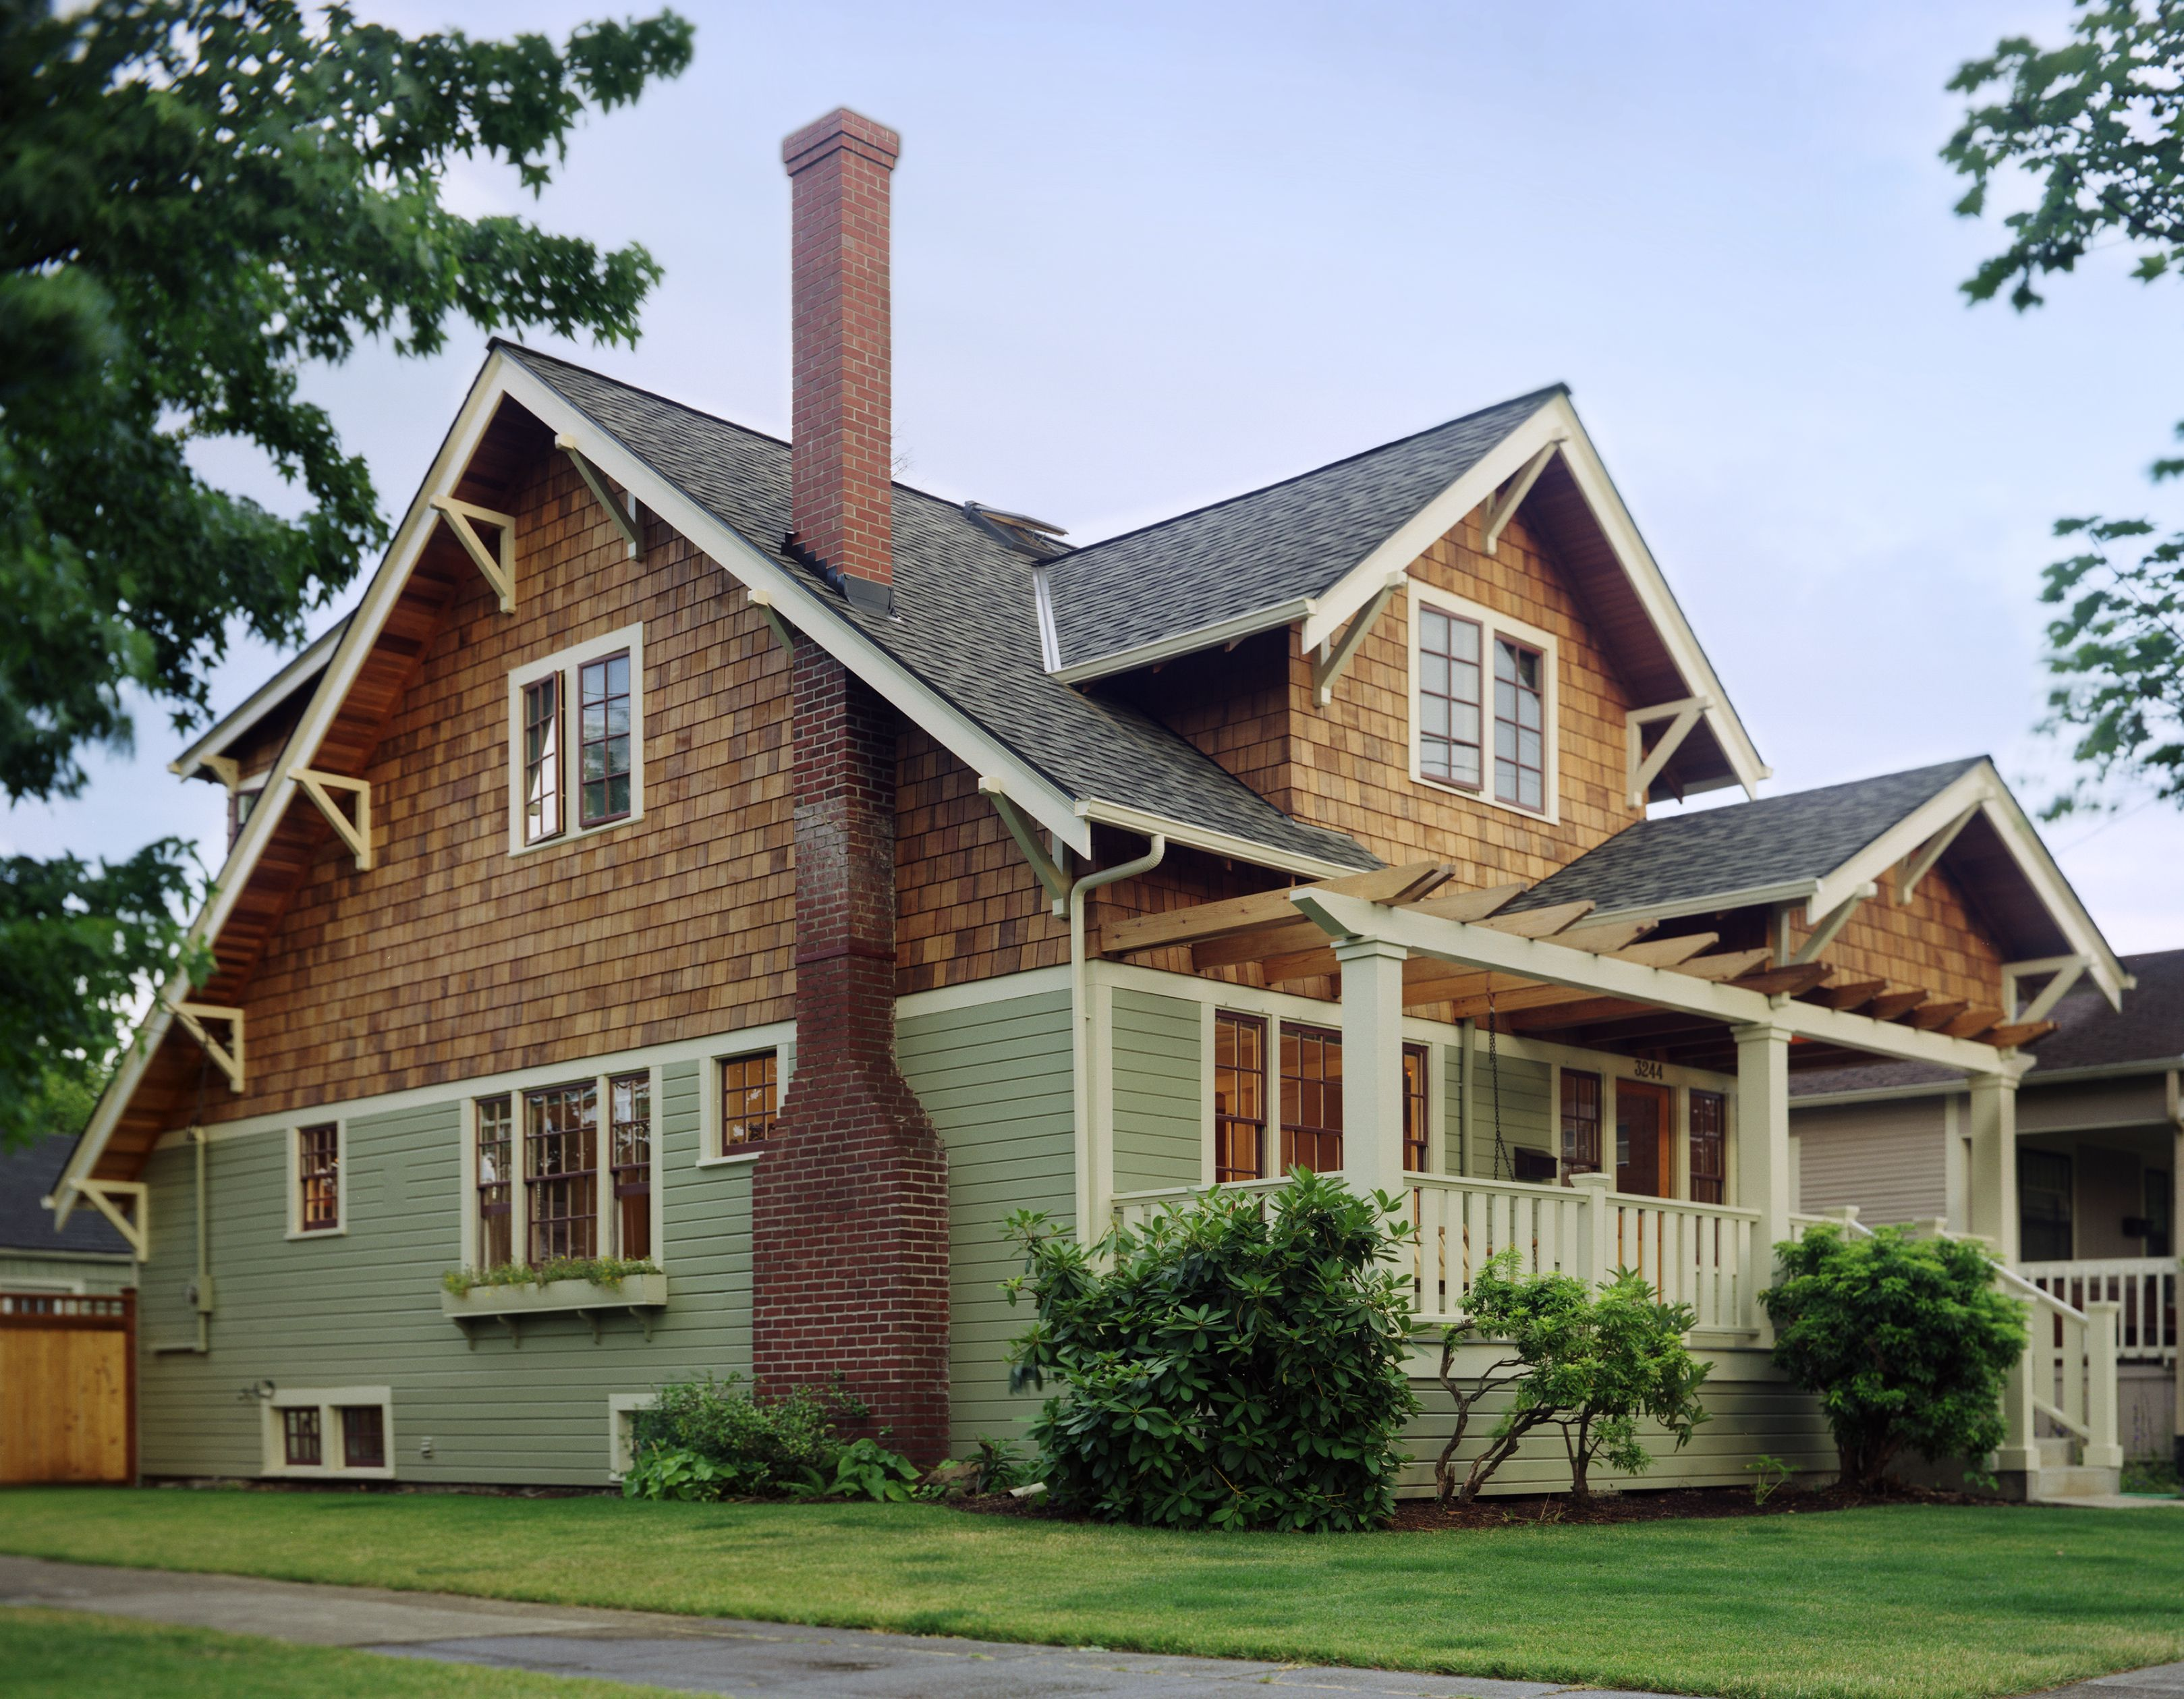 Pacific northwest architecture craftsman style house not for Pacific northwest homes